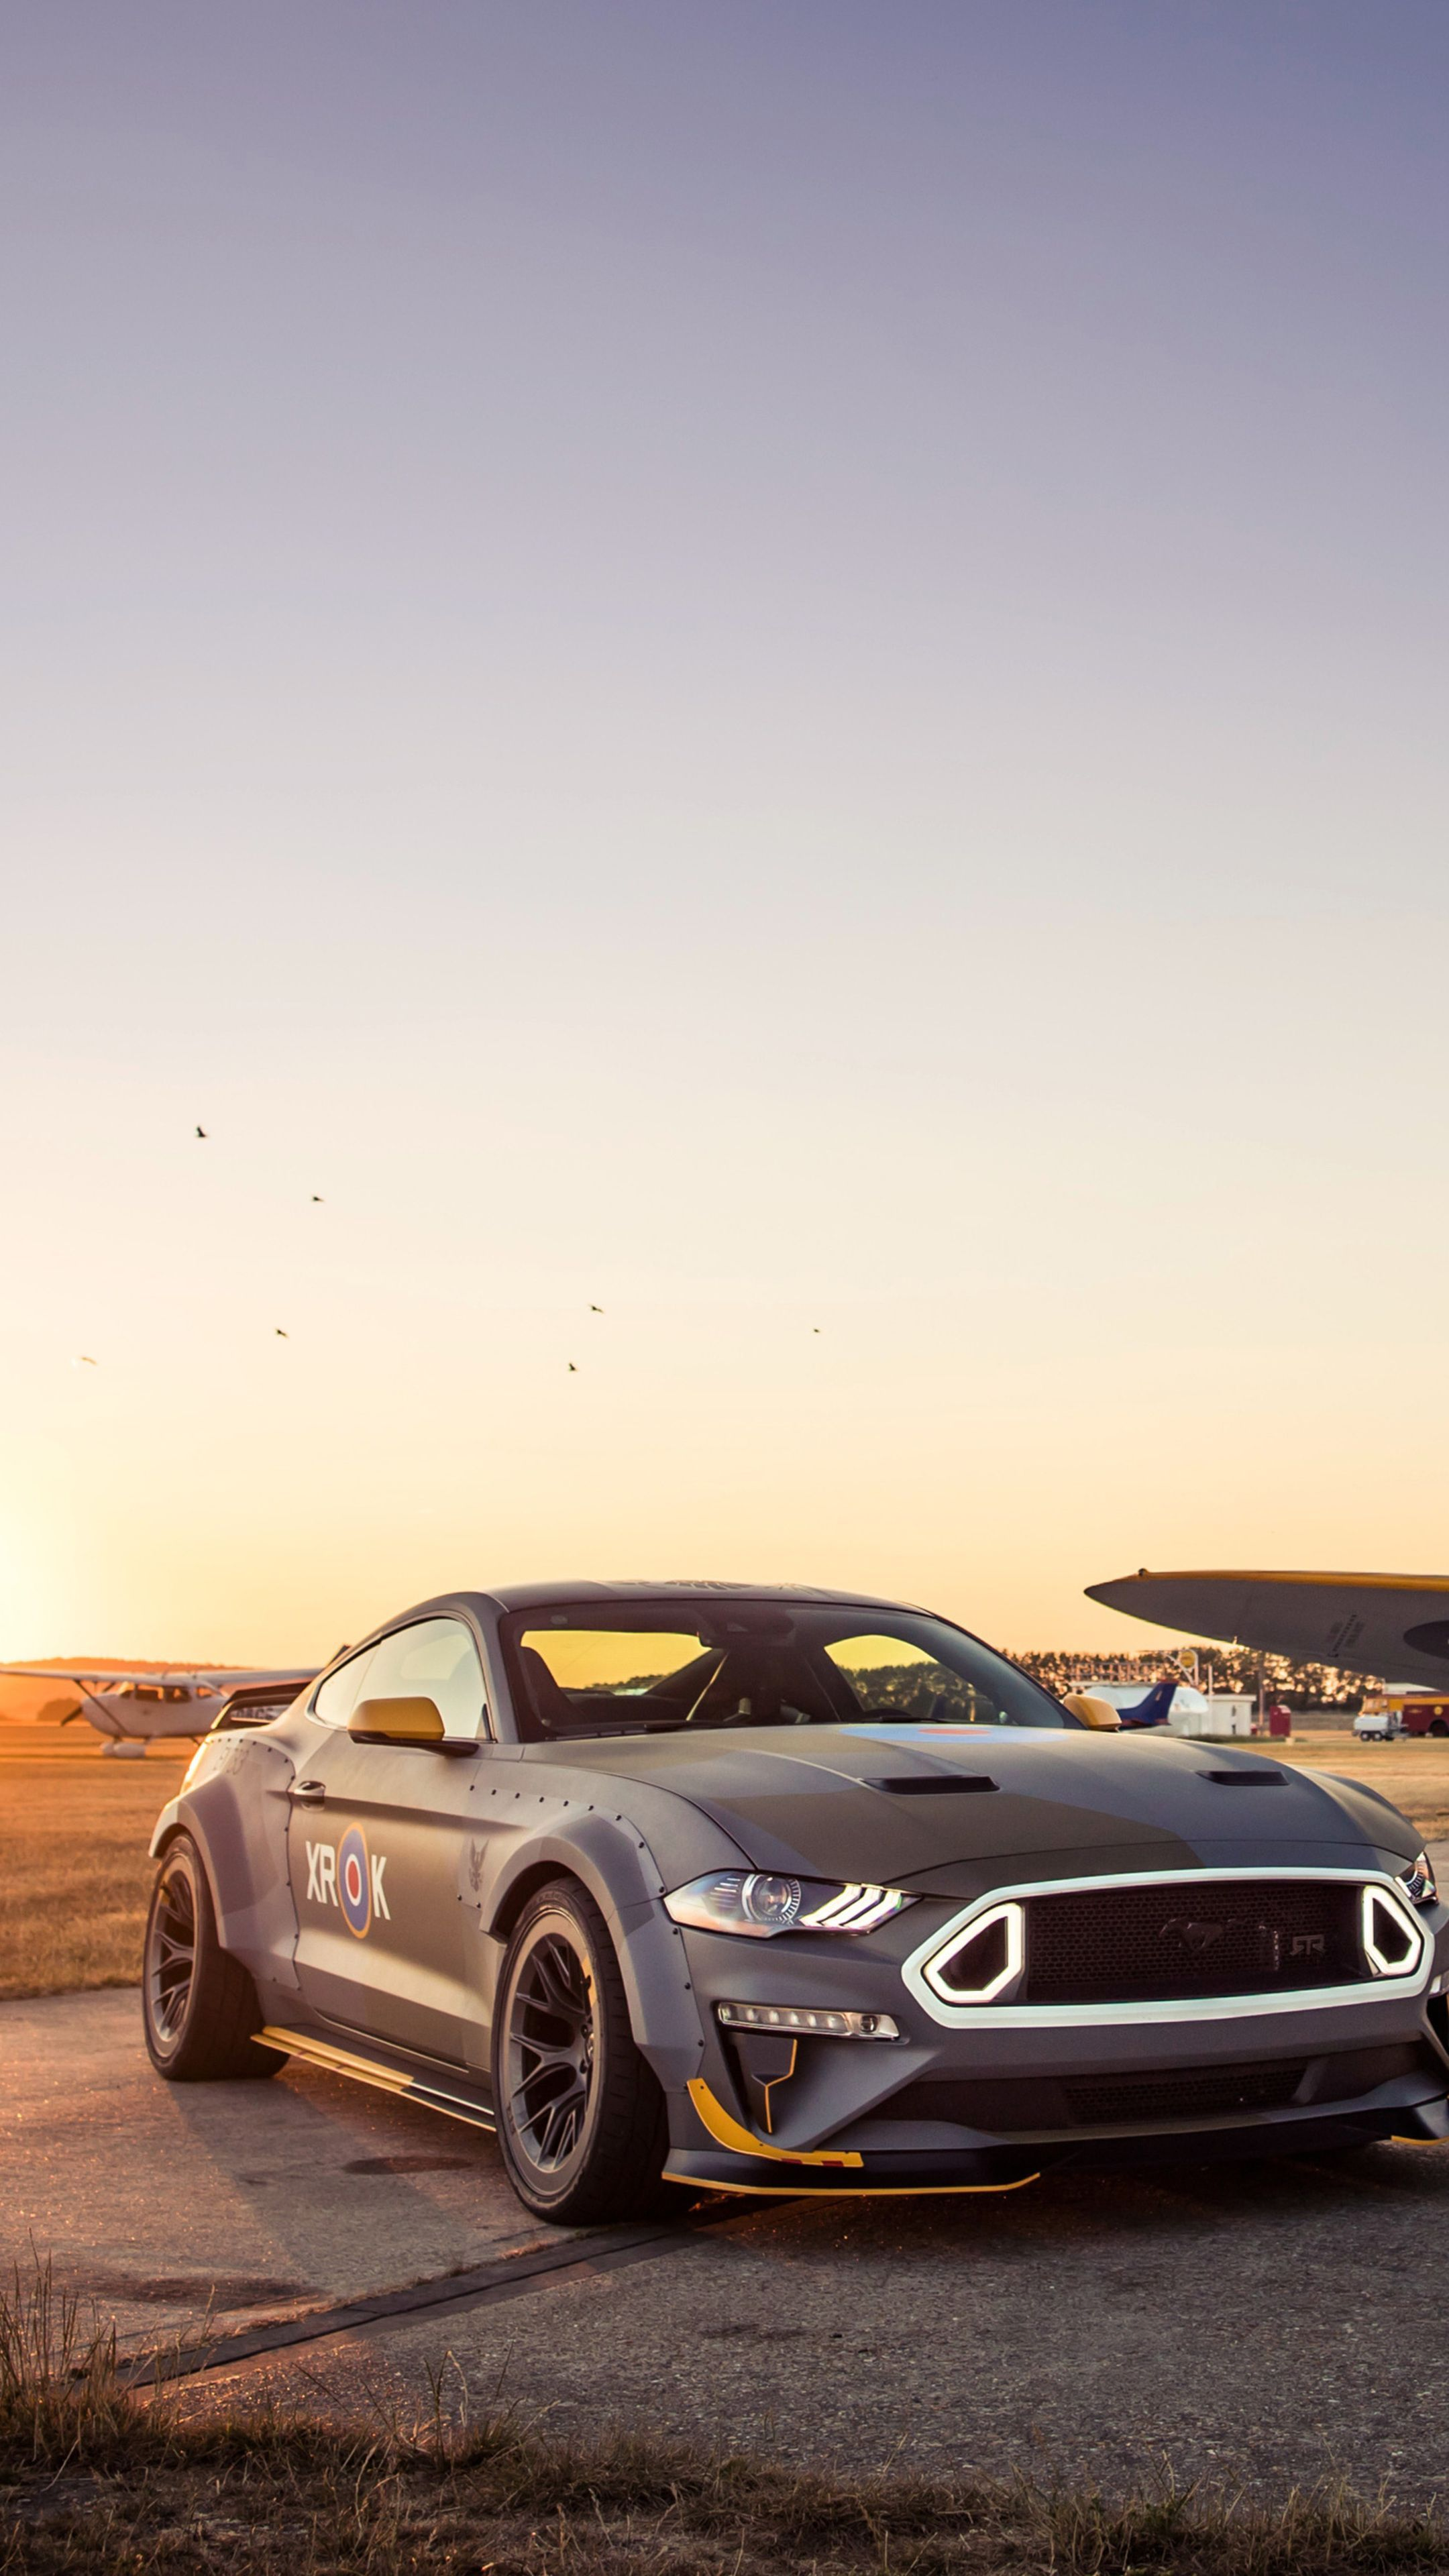 Cars Ford Eagle Geschwader Mustang Gt Wallpapers Mustang Gt Mustang Cars Mustang